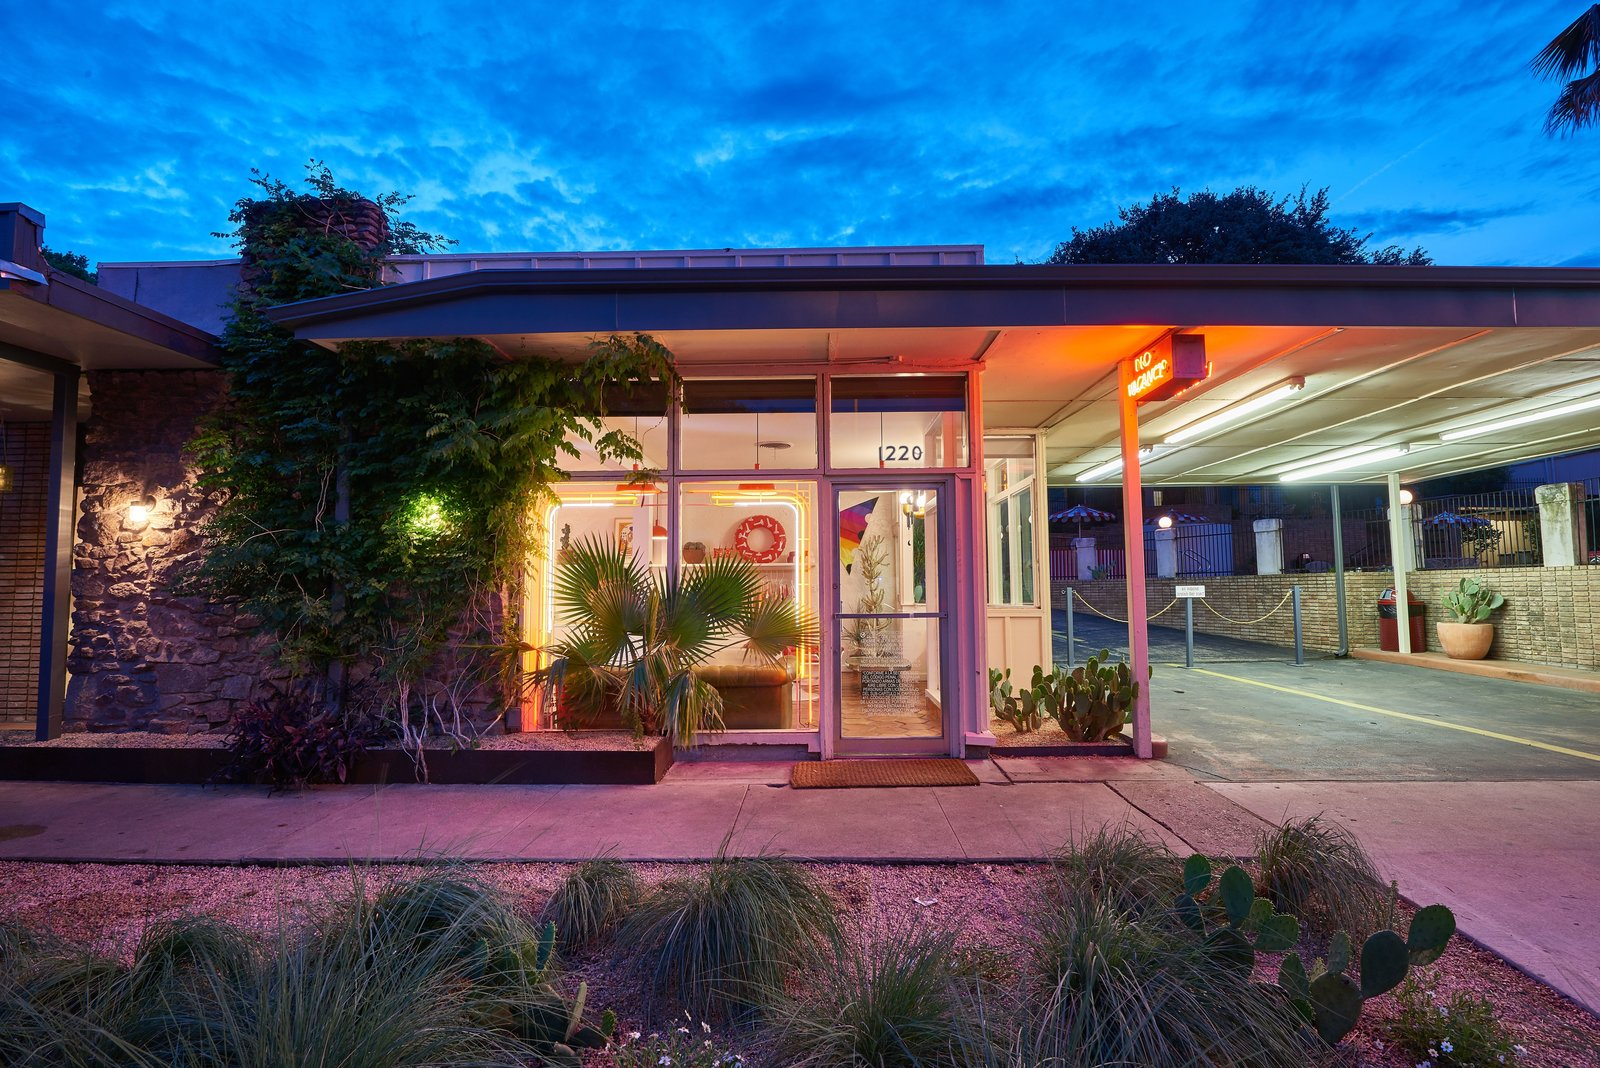 Photo 13 of 13 in The Rejuvenated Austin Motel Welcomes Guests With Upbeat, Midcentury-Modern Vibes